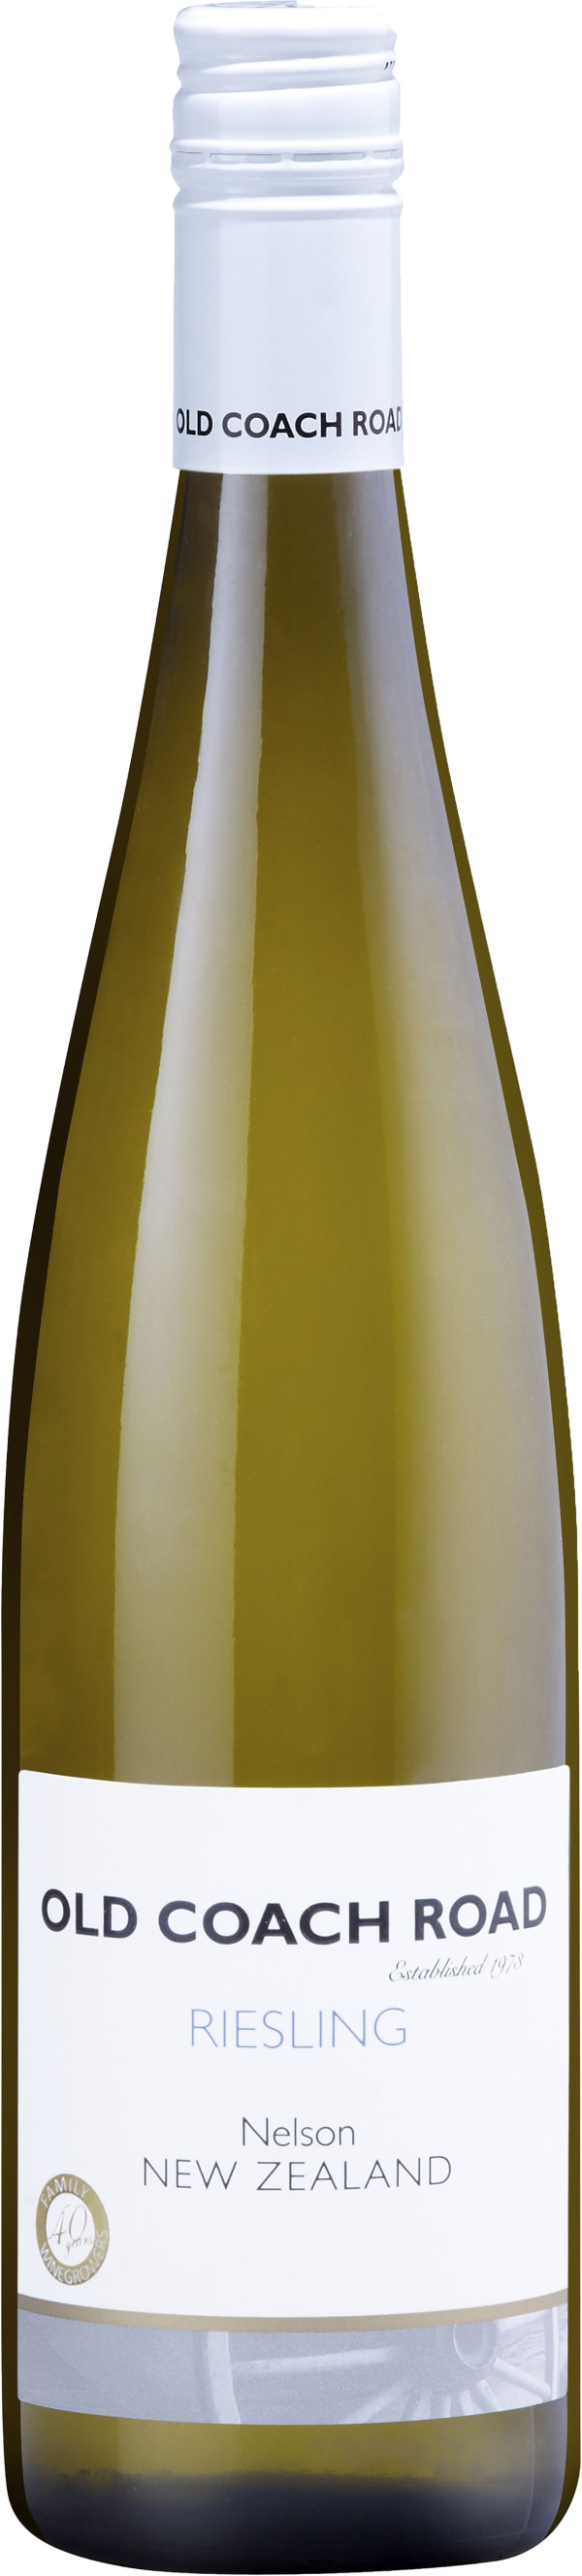 Old Coach Road Riesling 2017